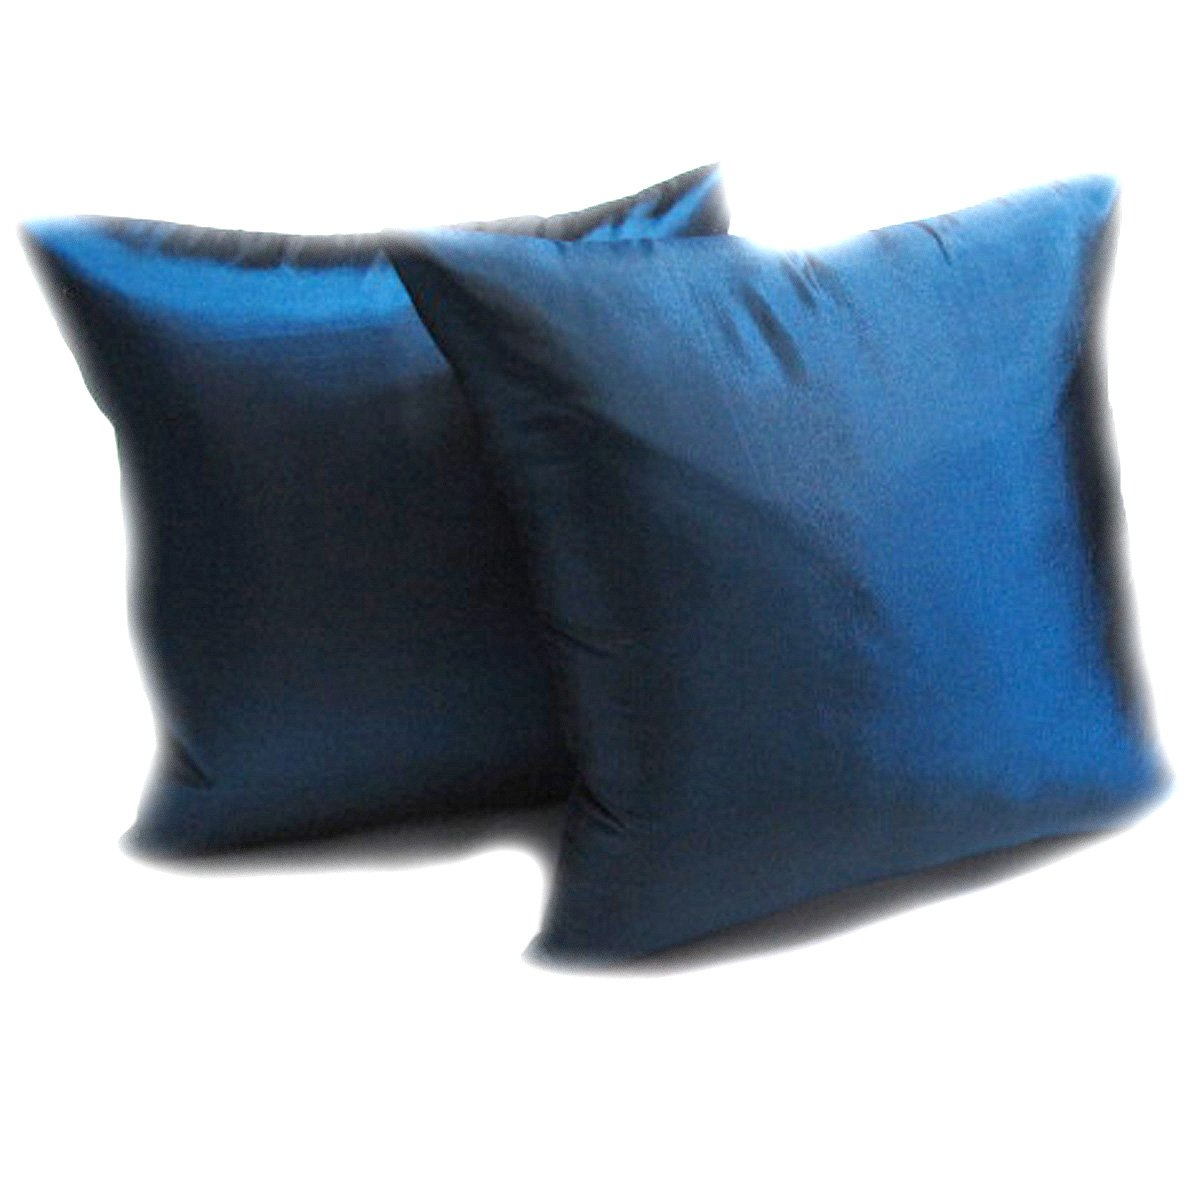 Thaimart (Dauble) 2 Beautiful Blue Throw Cushion Cover/pillow Case Handmade By Satin and Thai Silk for Decorative Sofa, Car and Living Room Size 16 X 16 Inches